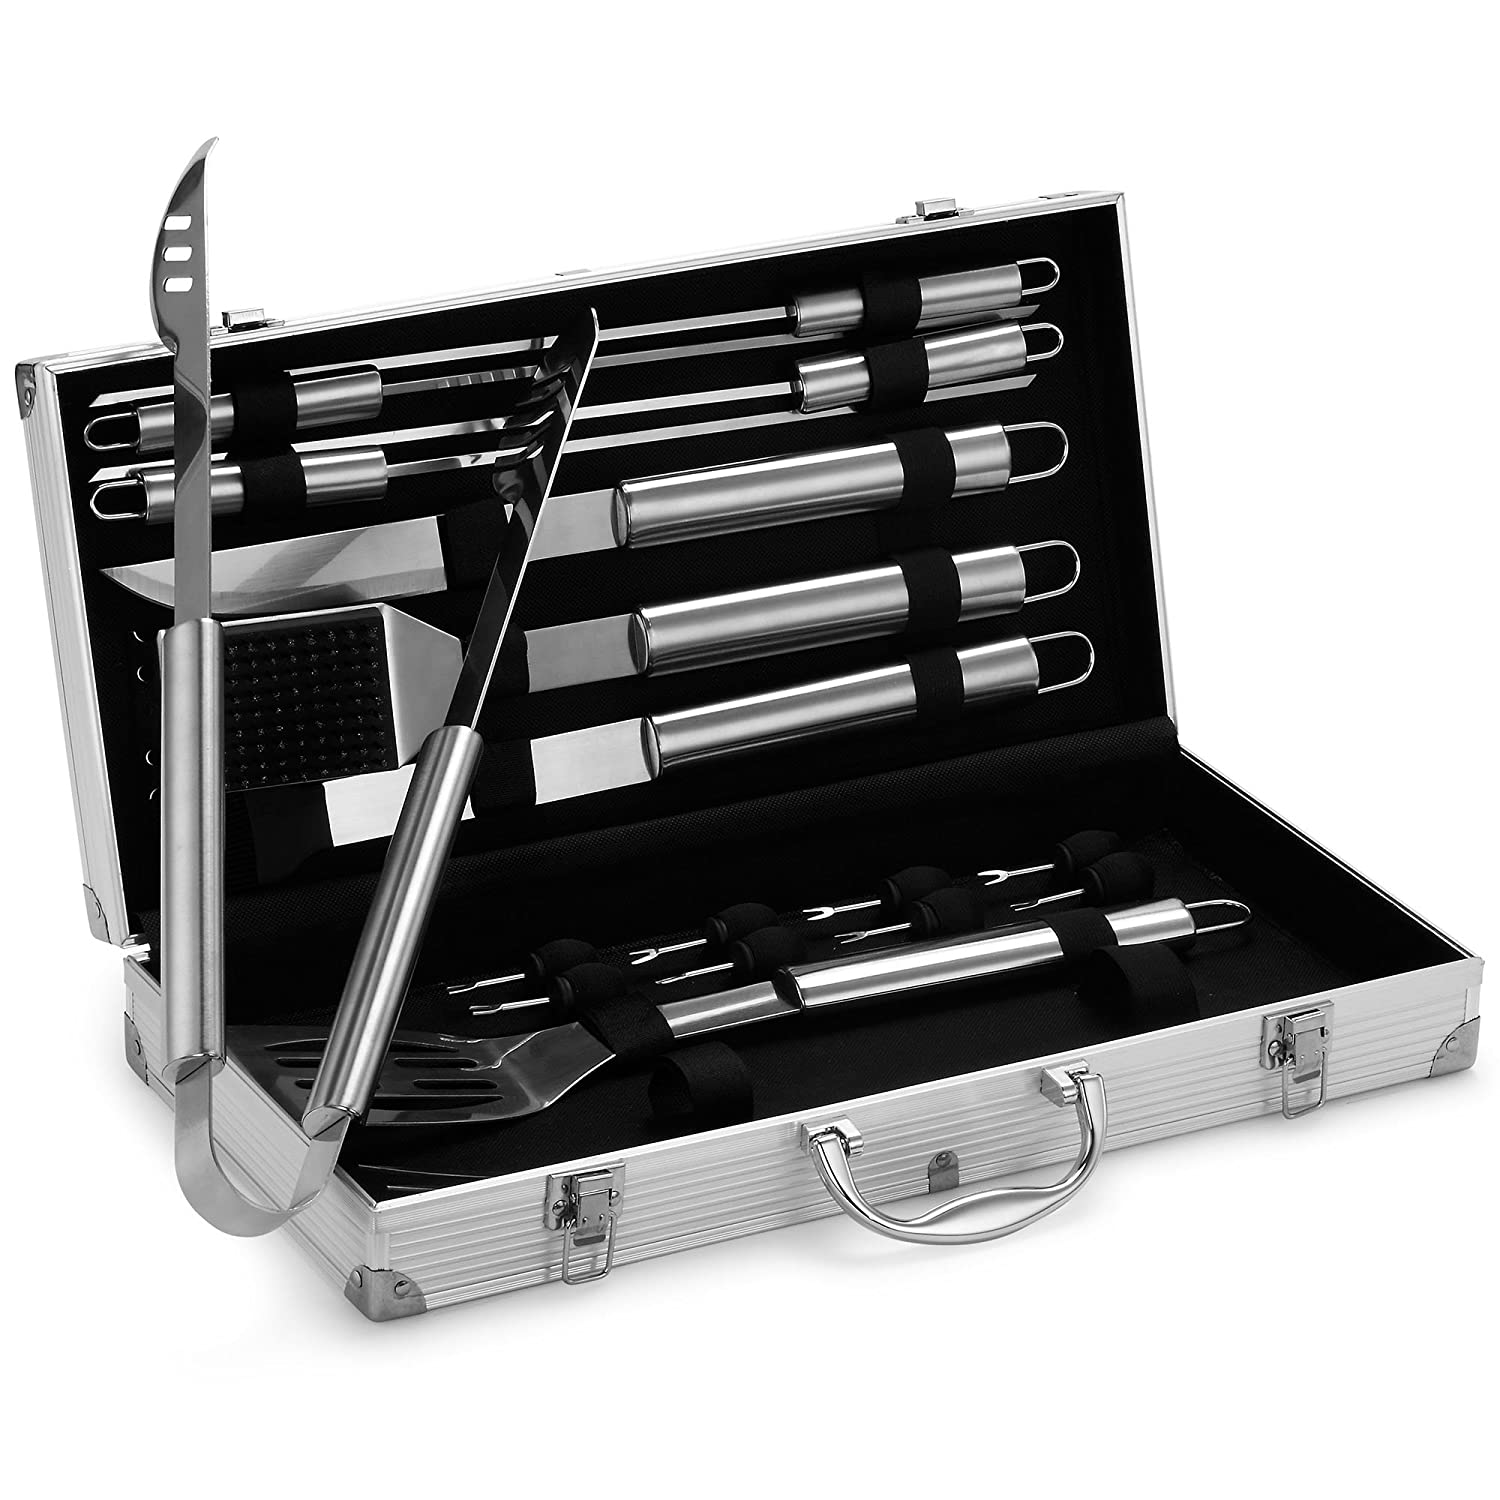 VonHaus 18-Piece Stainless Steel BBQ Accessories Tool Set - Includes Aluminum Storage Case for Barbecue Grill Utensils Designer Habitat Ltd NA